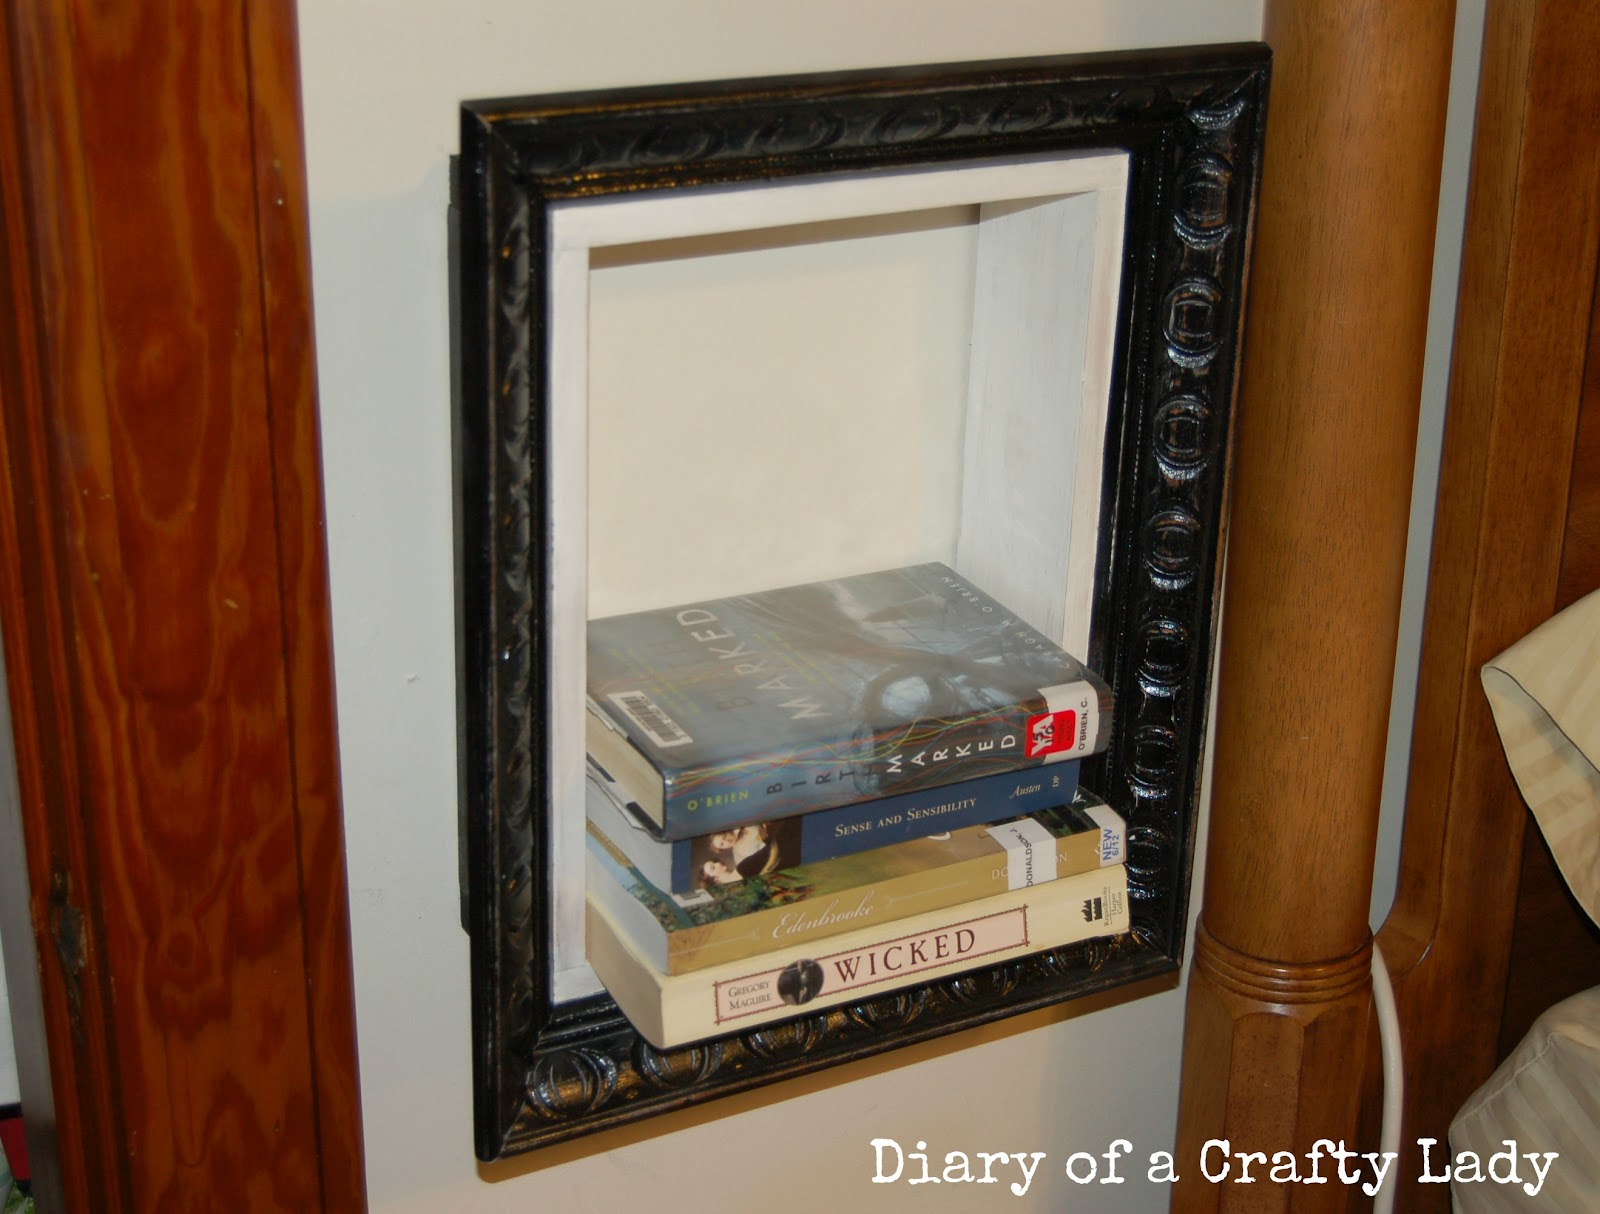 Diary of a crafty lady picture frame book shelf picture frame book shelf jeuxipadfo Gallery